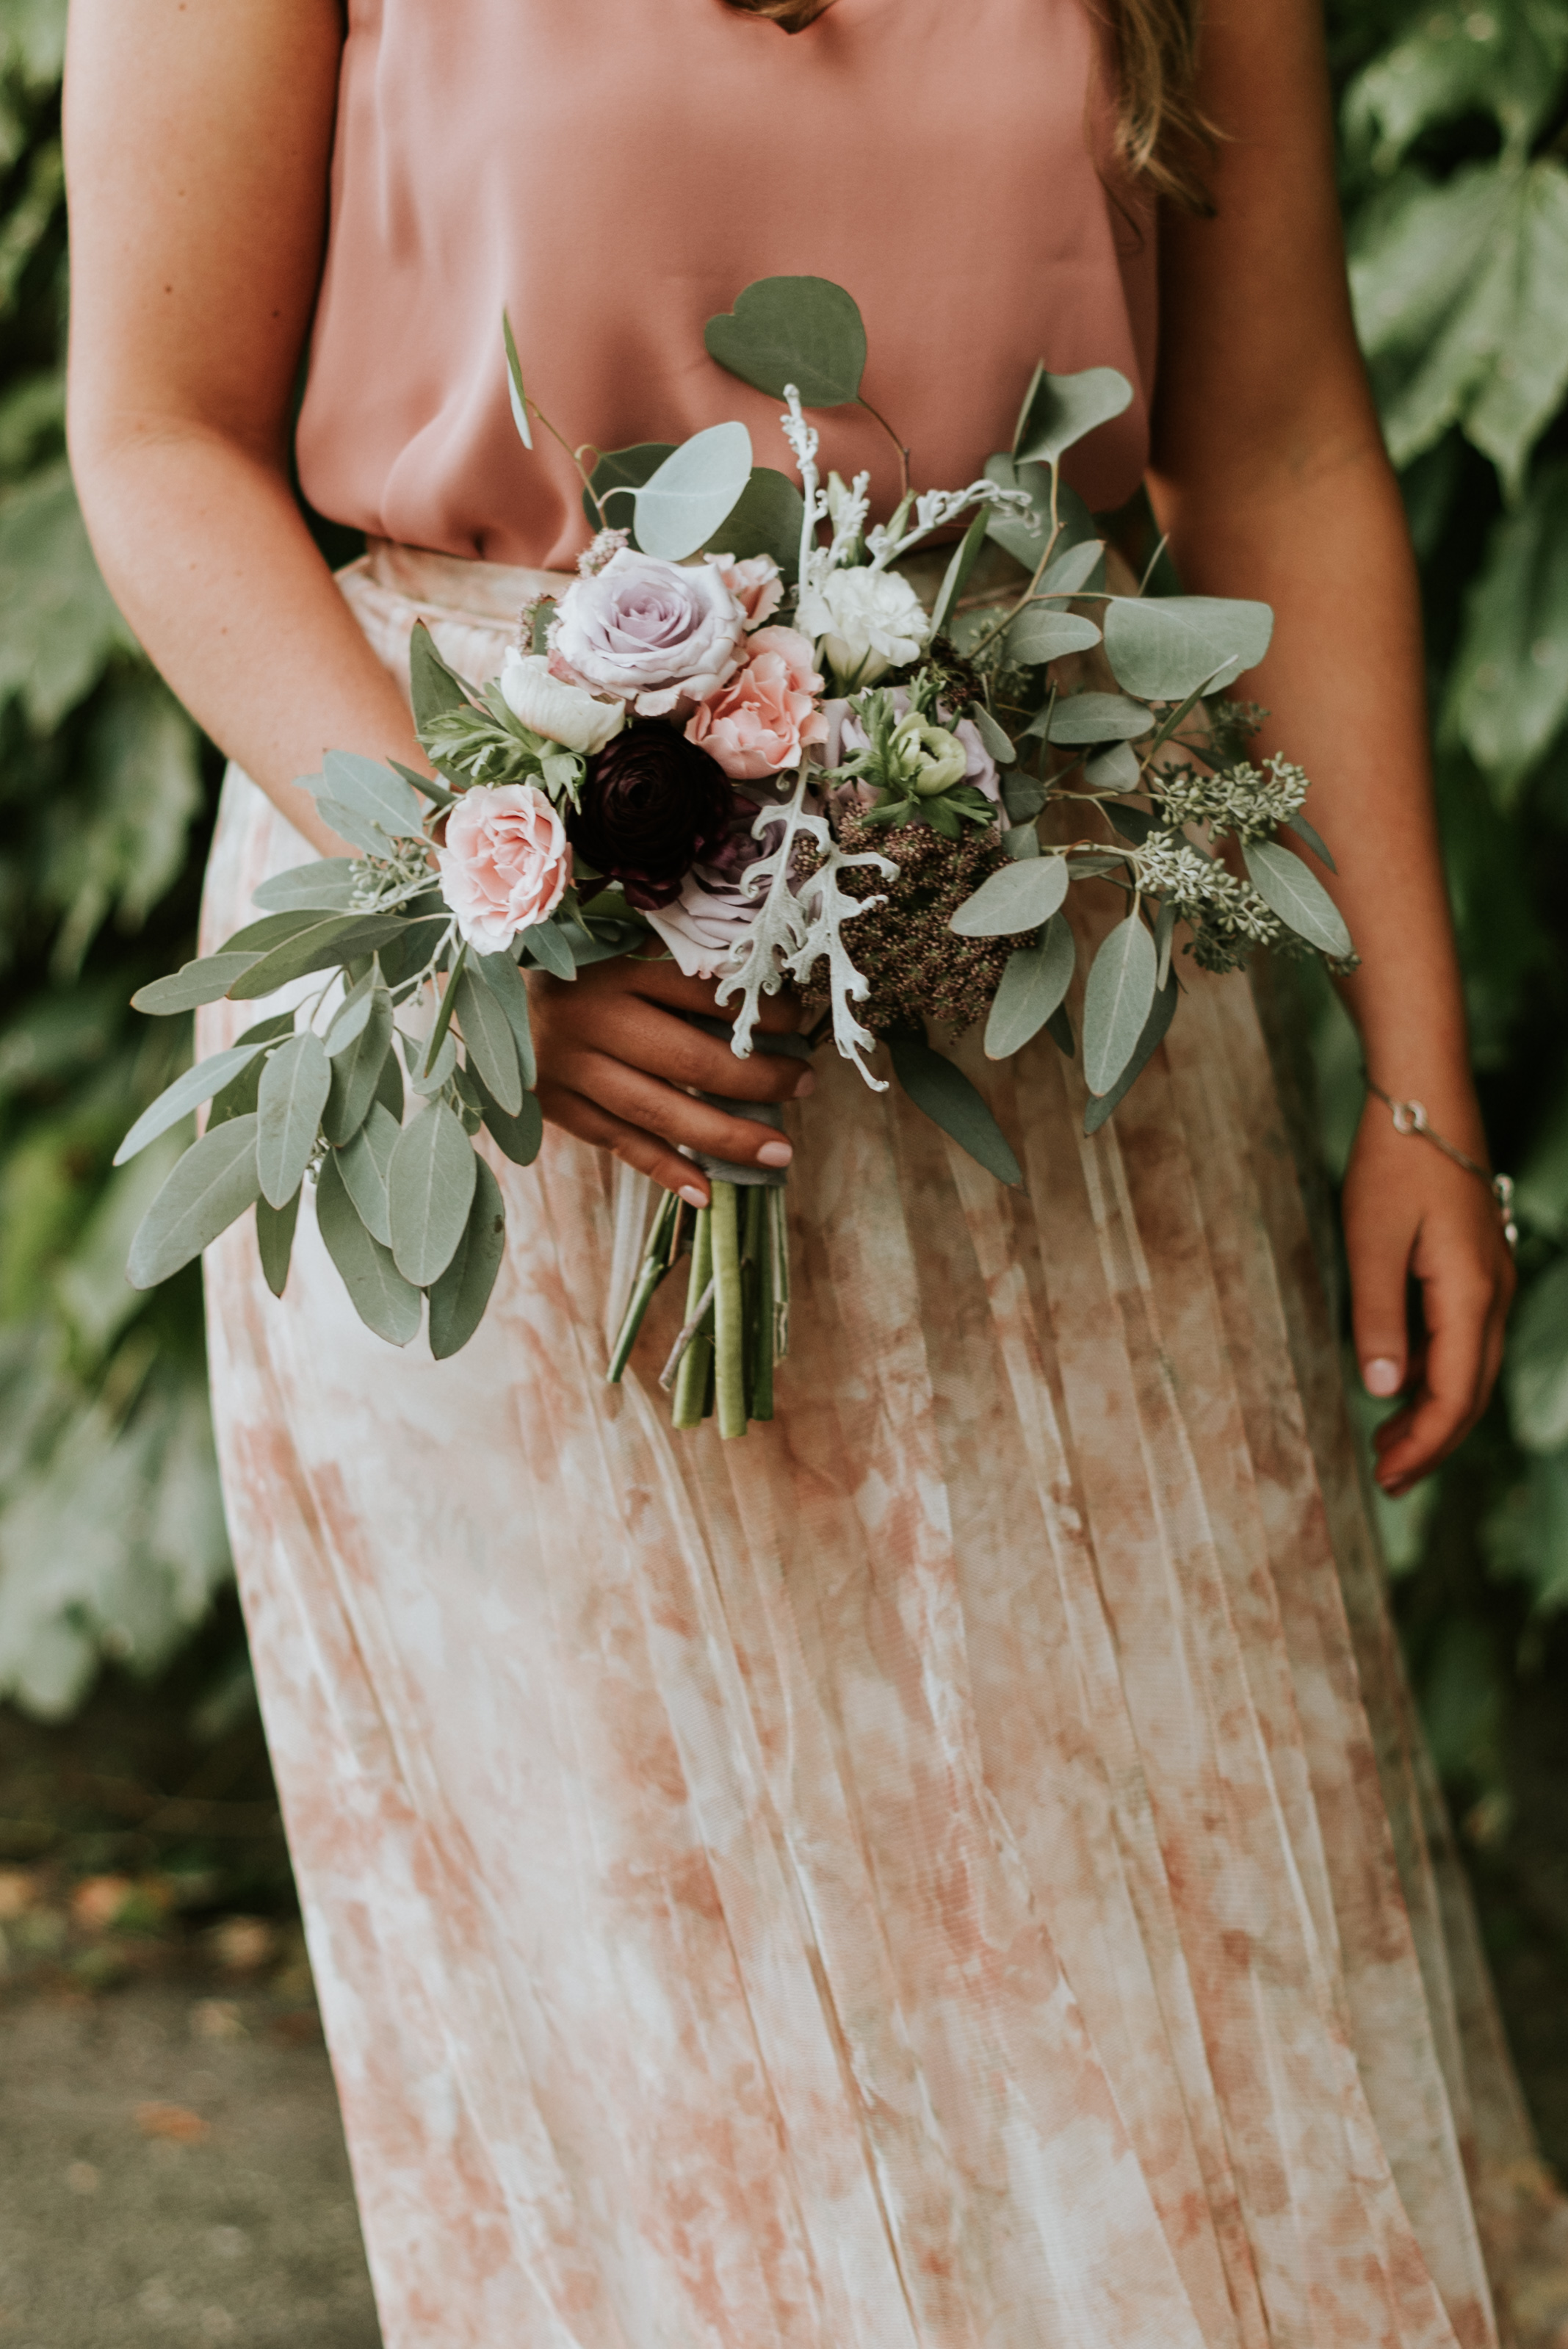 Rustic Oyster Themed Eastern Shore Maryland Outdoor Wedding by East Made Event Company Wedding Planner and Bekah Kay Creative452.jpg